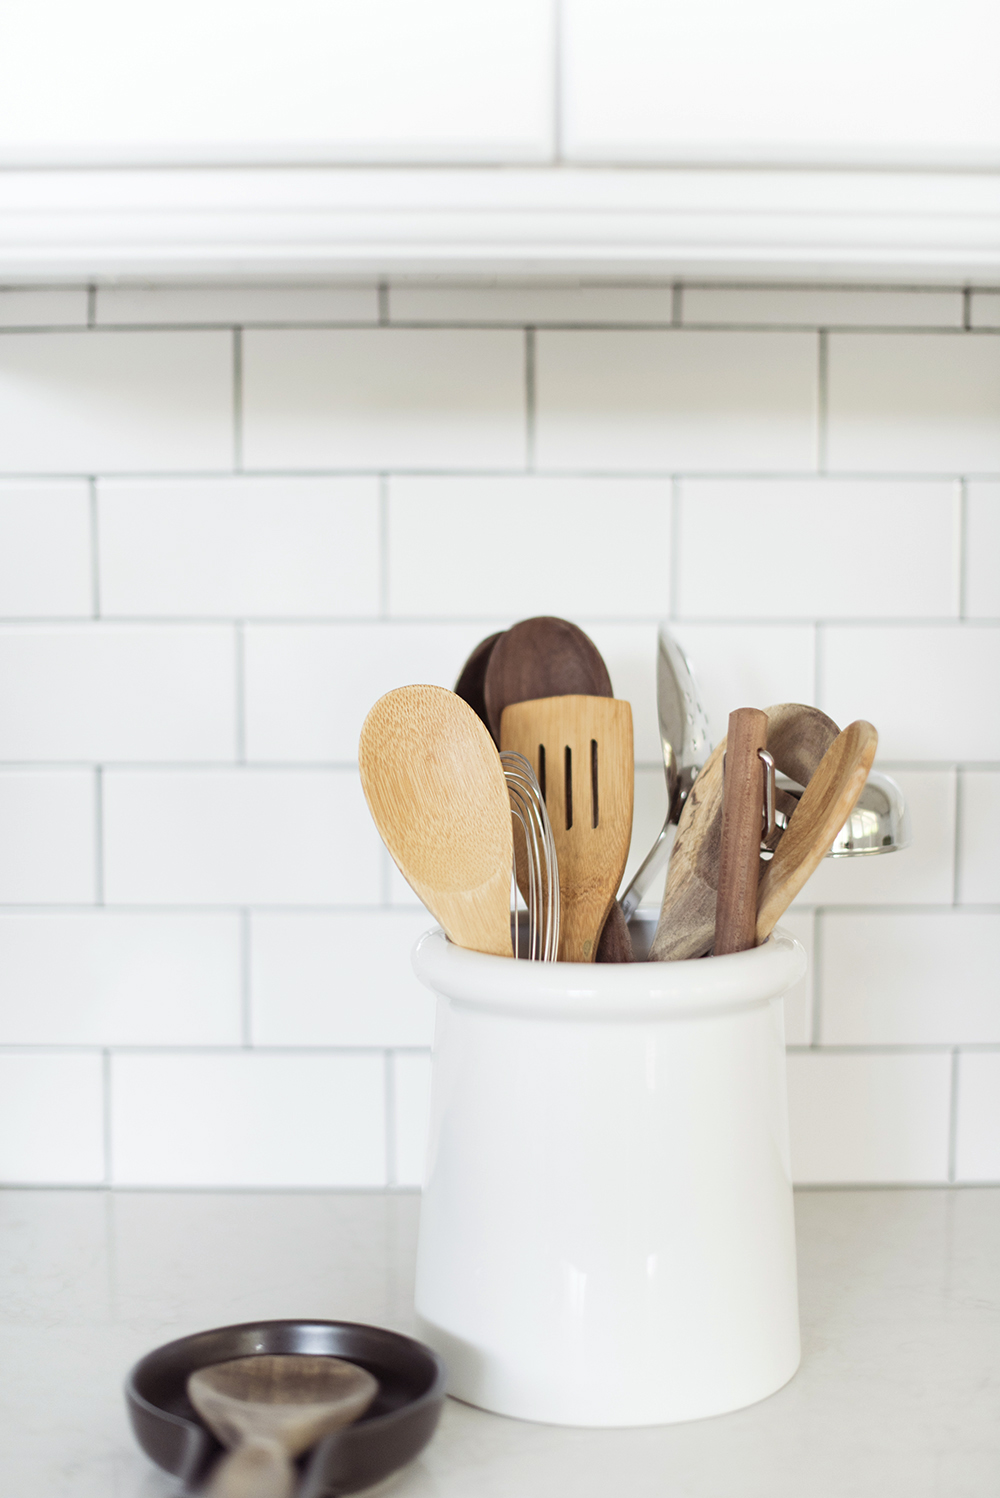 Giant Roundup : Kitchen Accessories & Utensils - Room for Tuesday